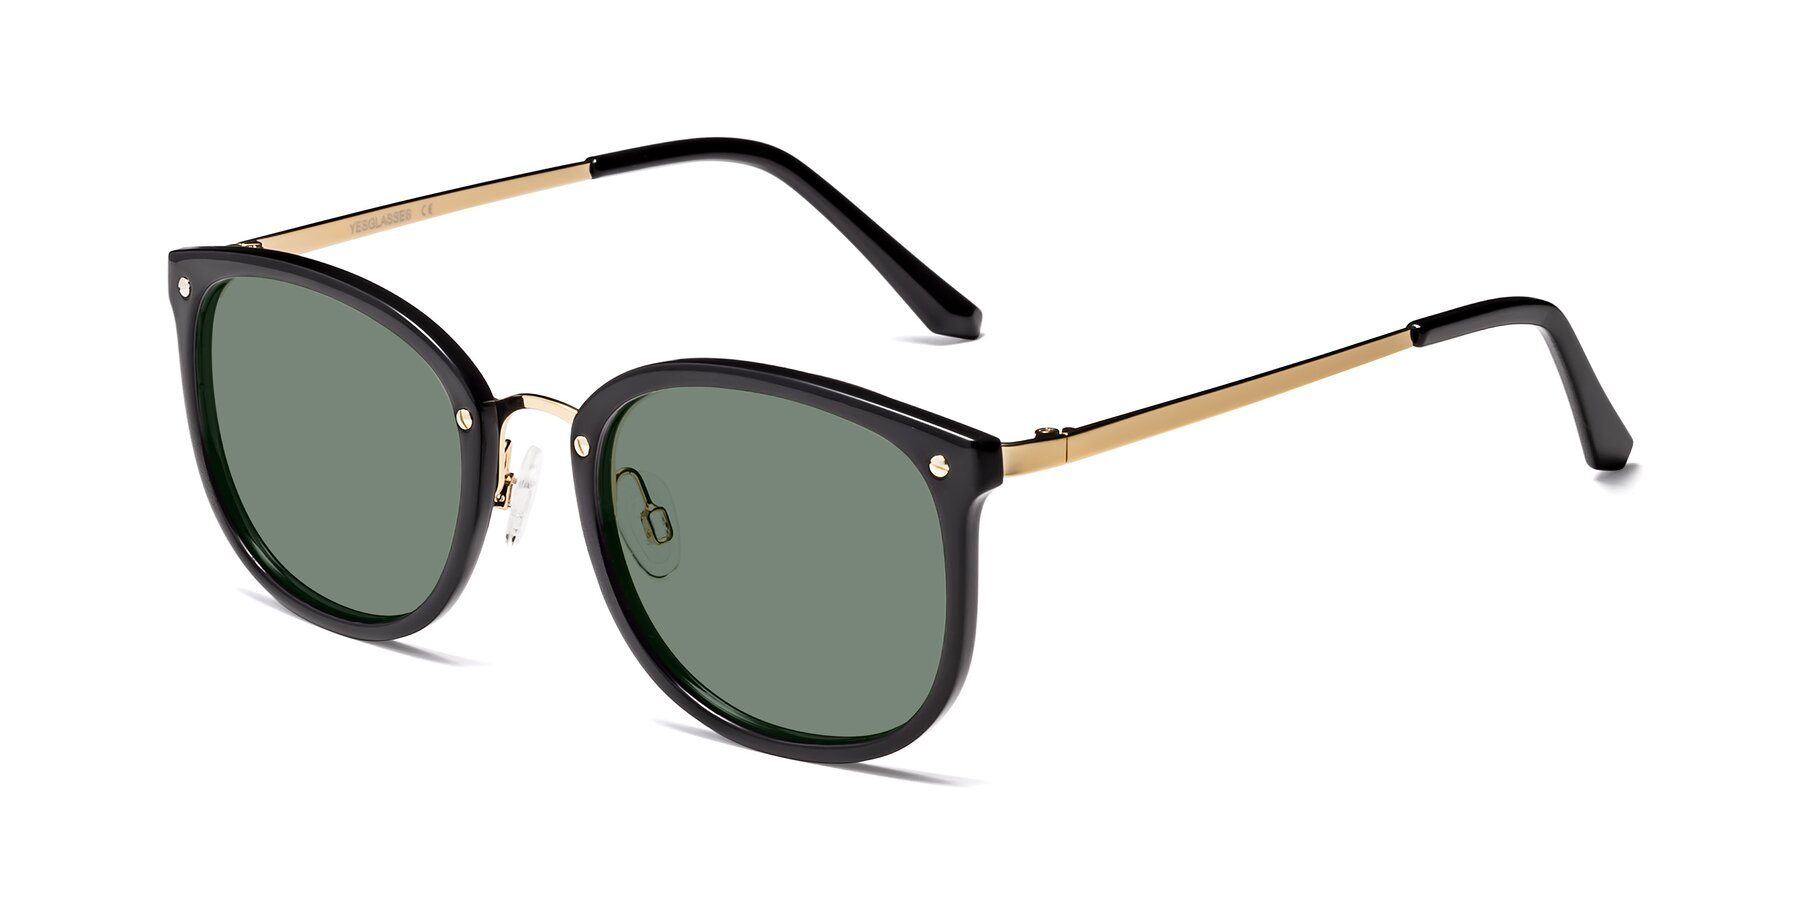 Angle of Timeless in Black-Gold with Medium Green Tinted Lenses